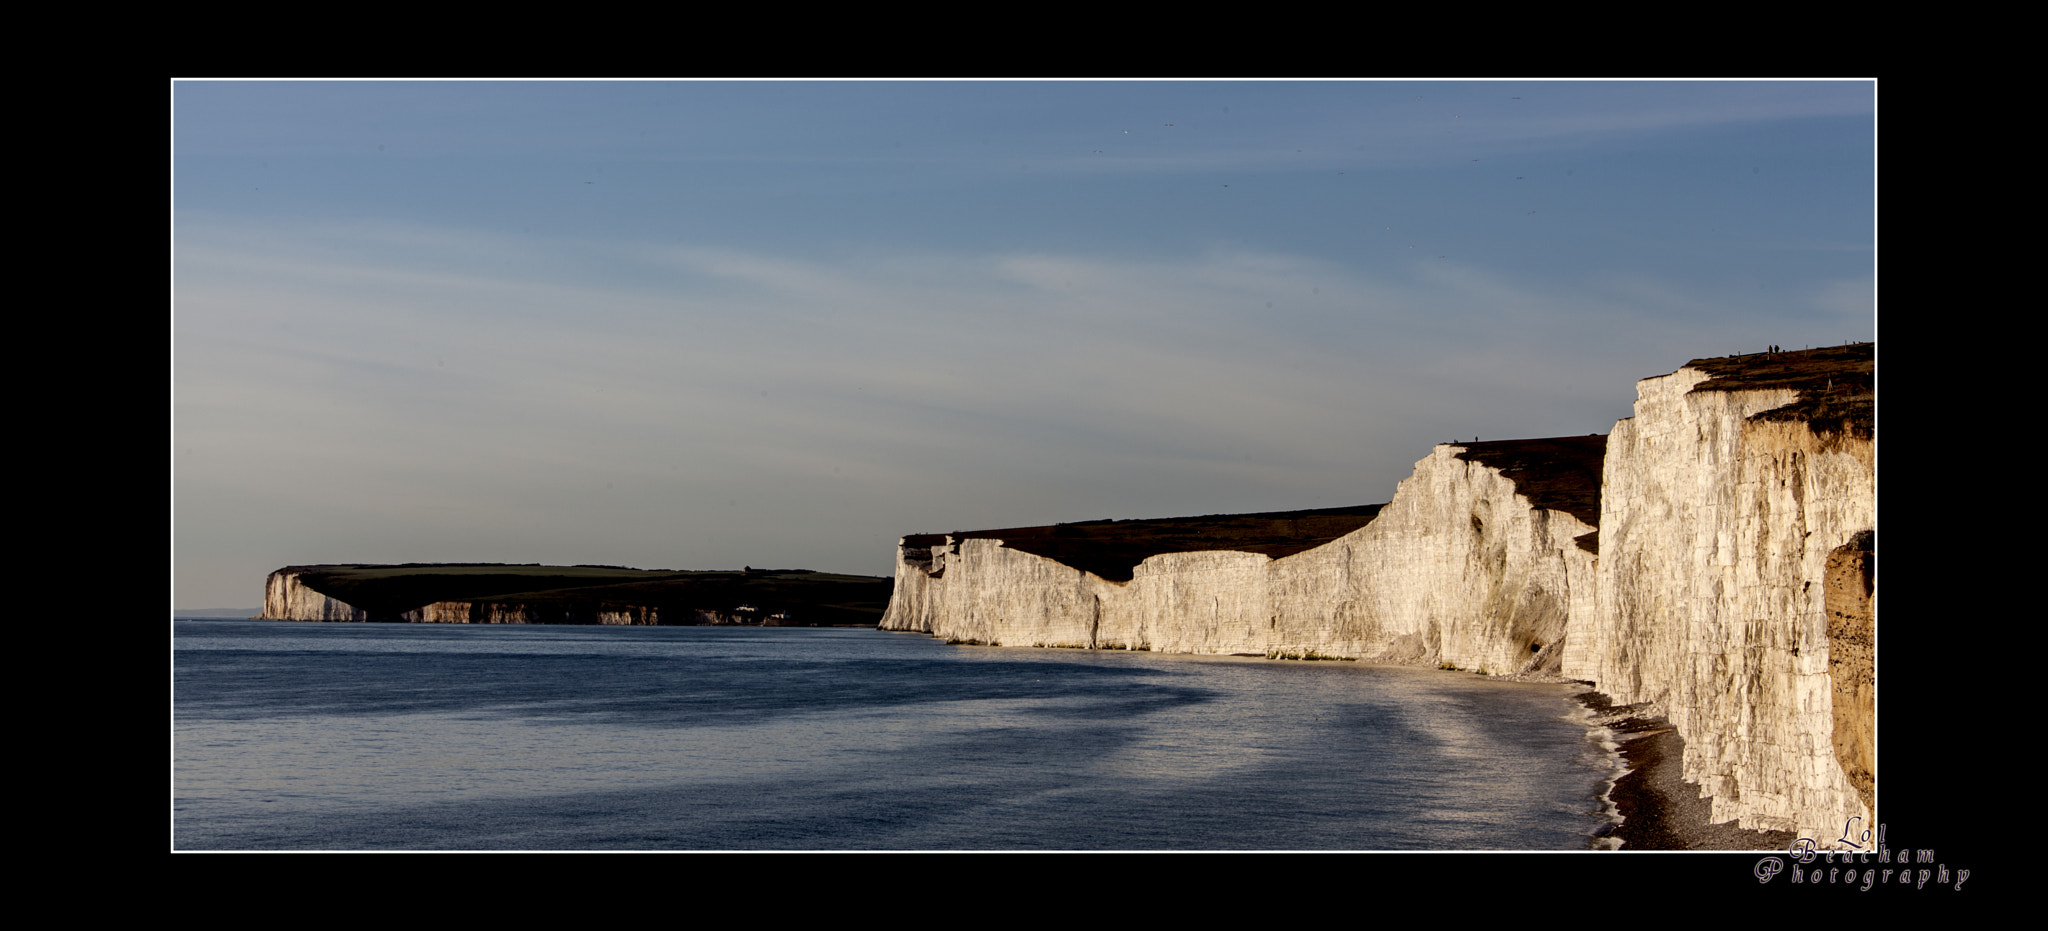 Photograph Seven Sister's (Birling Gap) by Lol Beacham on 500px